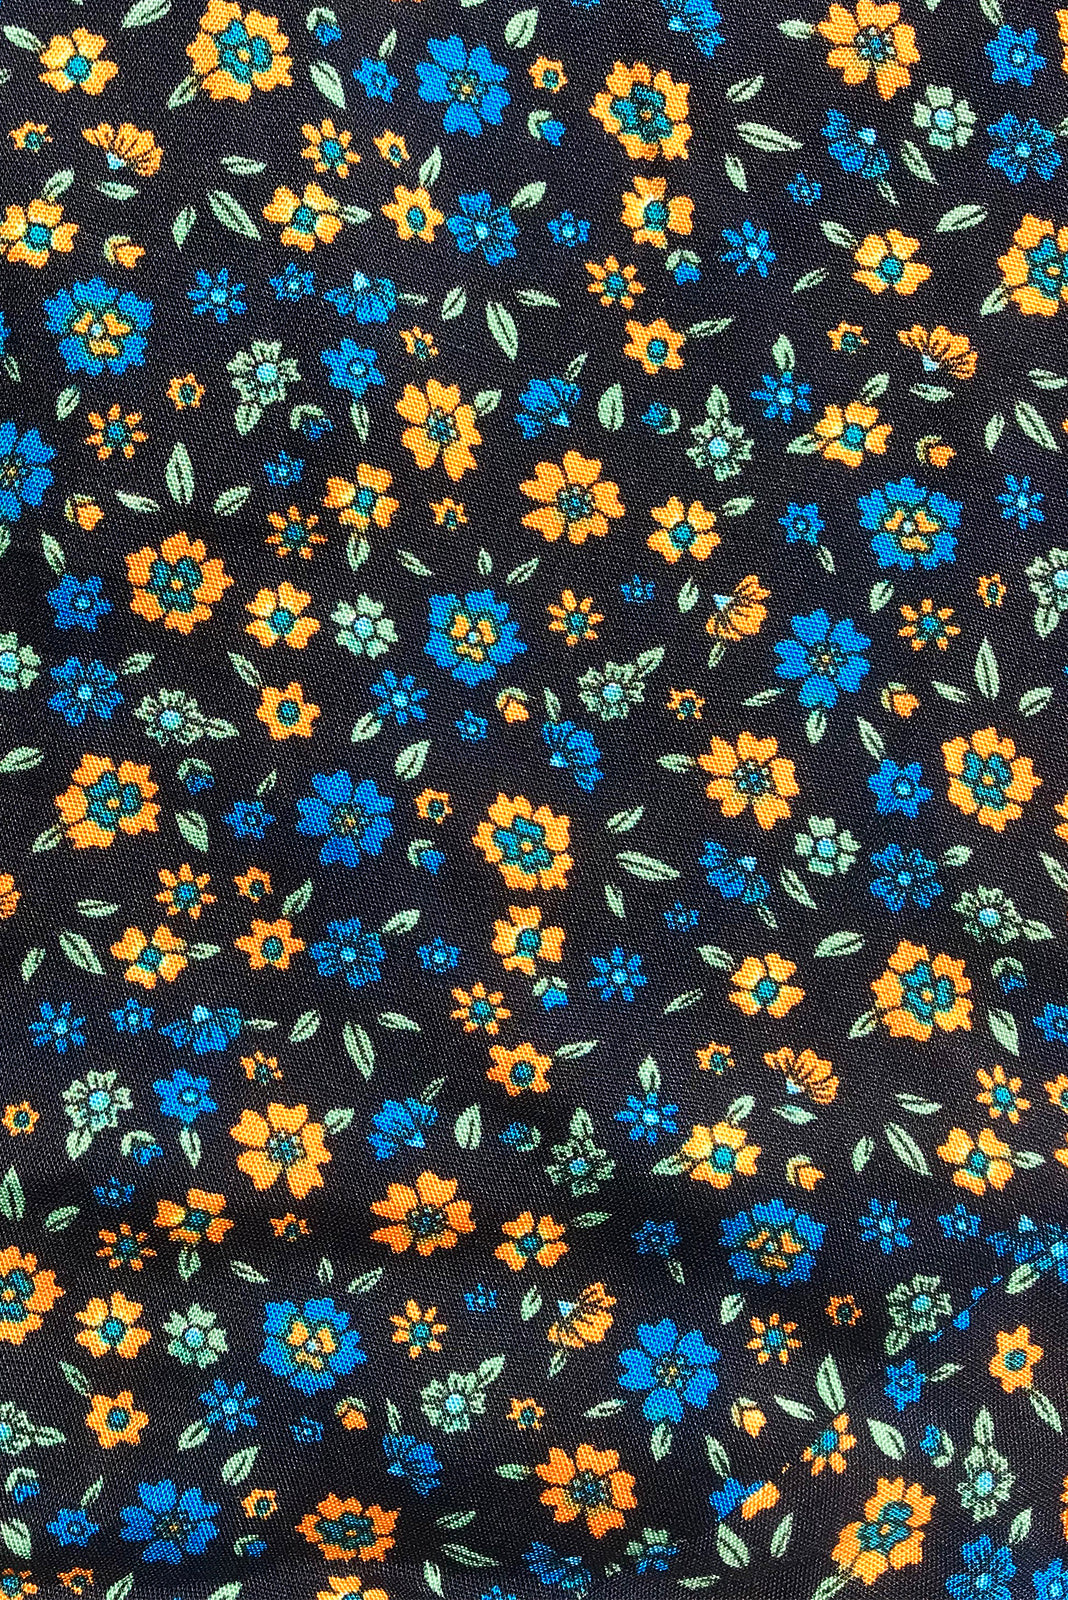 Fabric swatch, 100% rayon, black base with petite gold, bright blue and mint floral pattern.